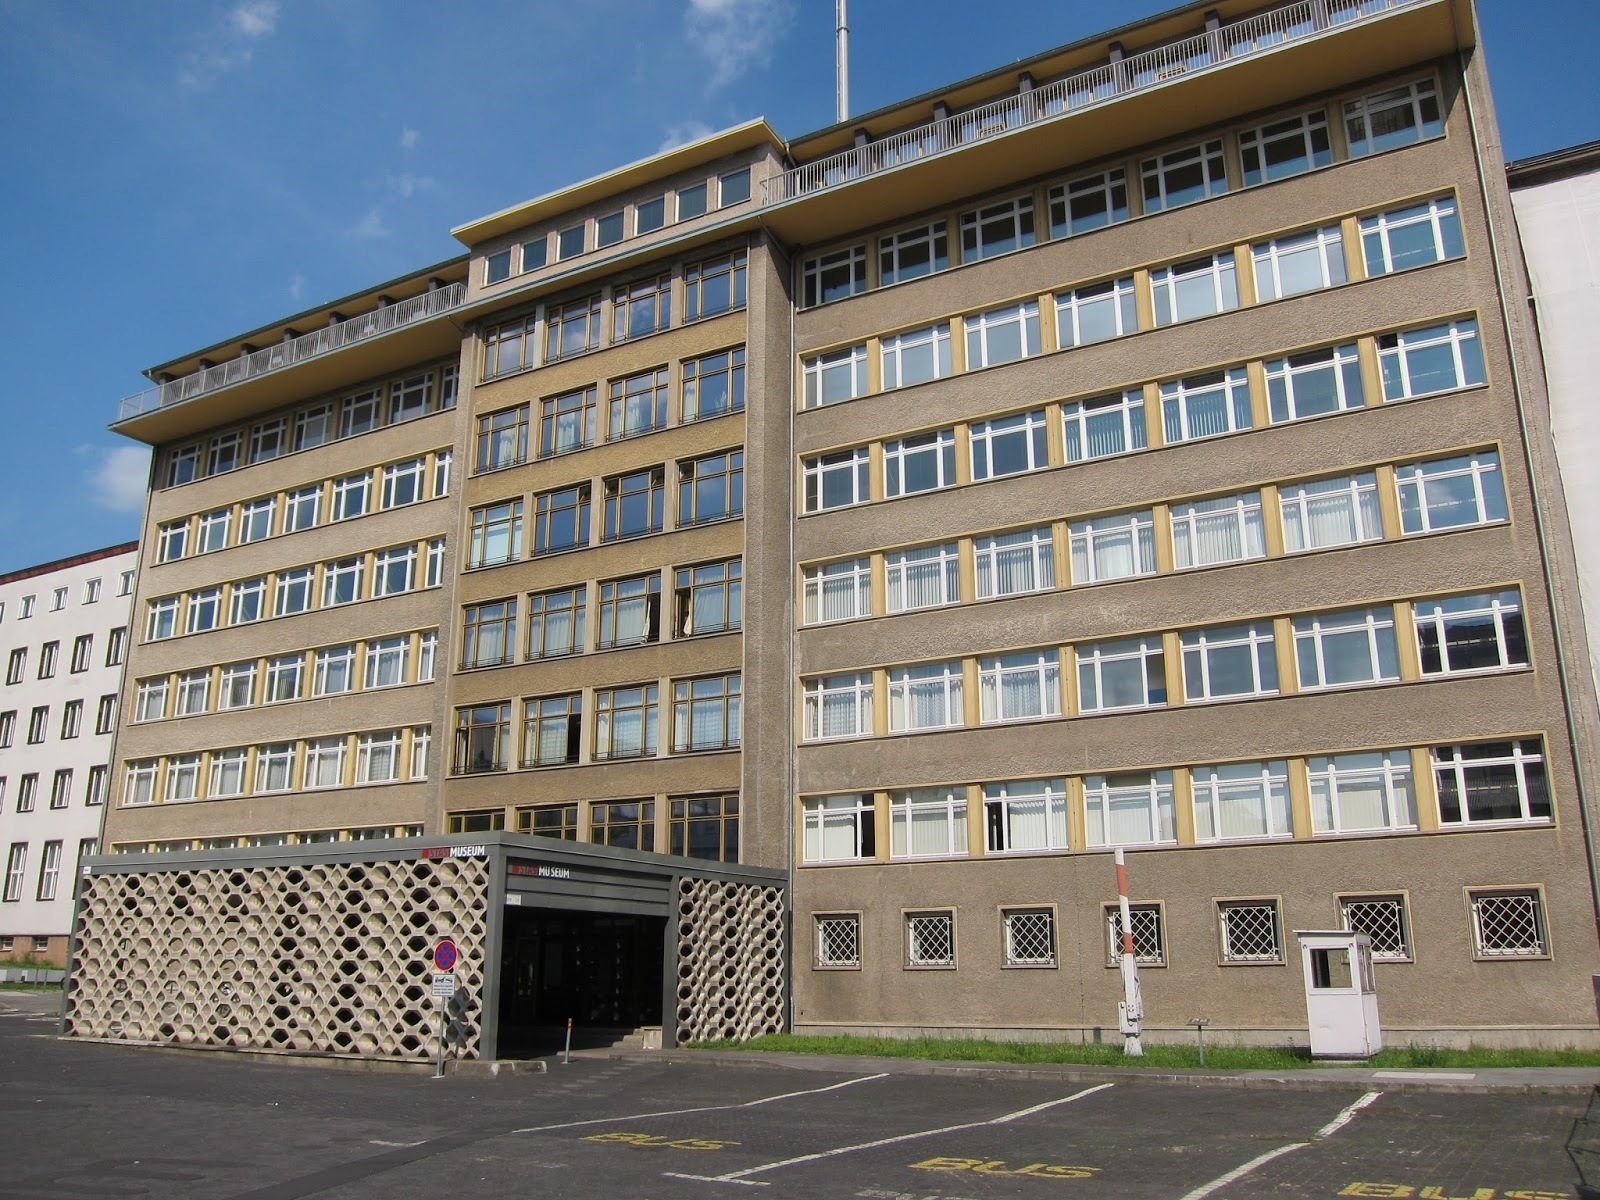 The former Stasi HQ in Berlin.